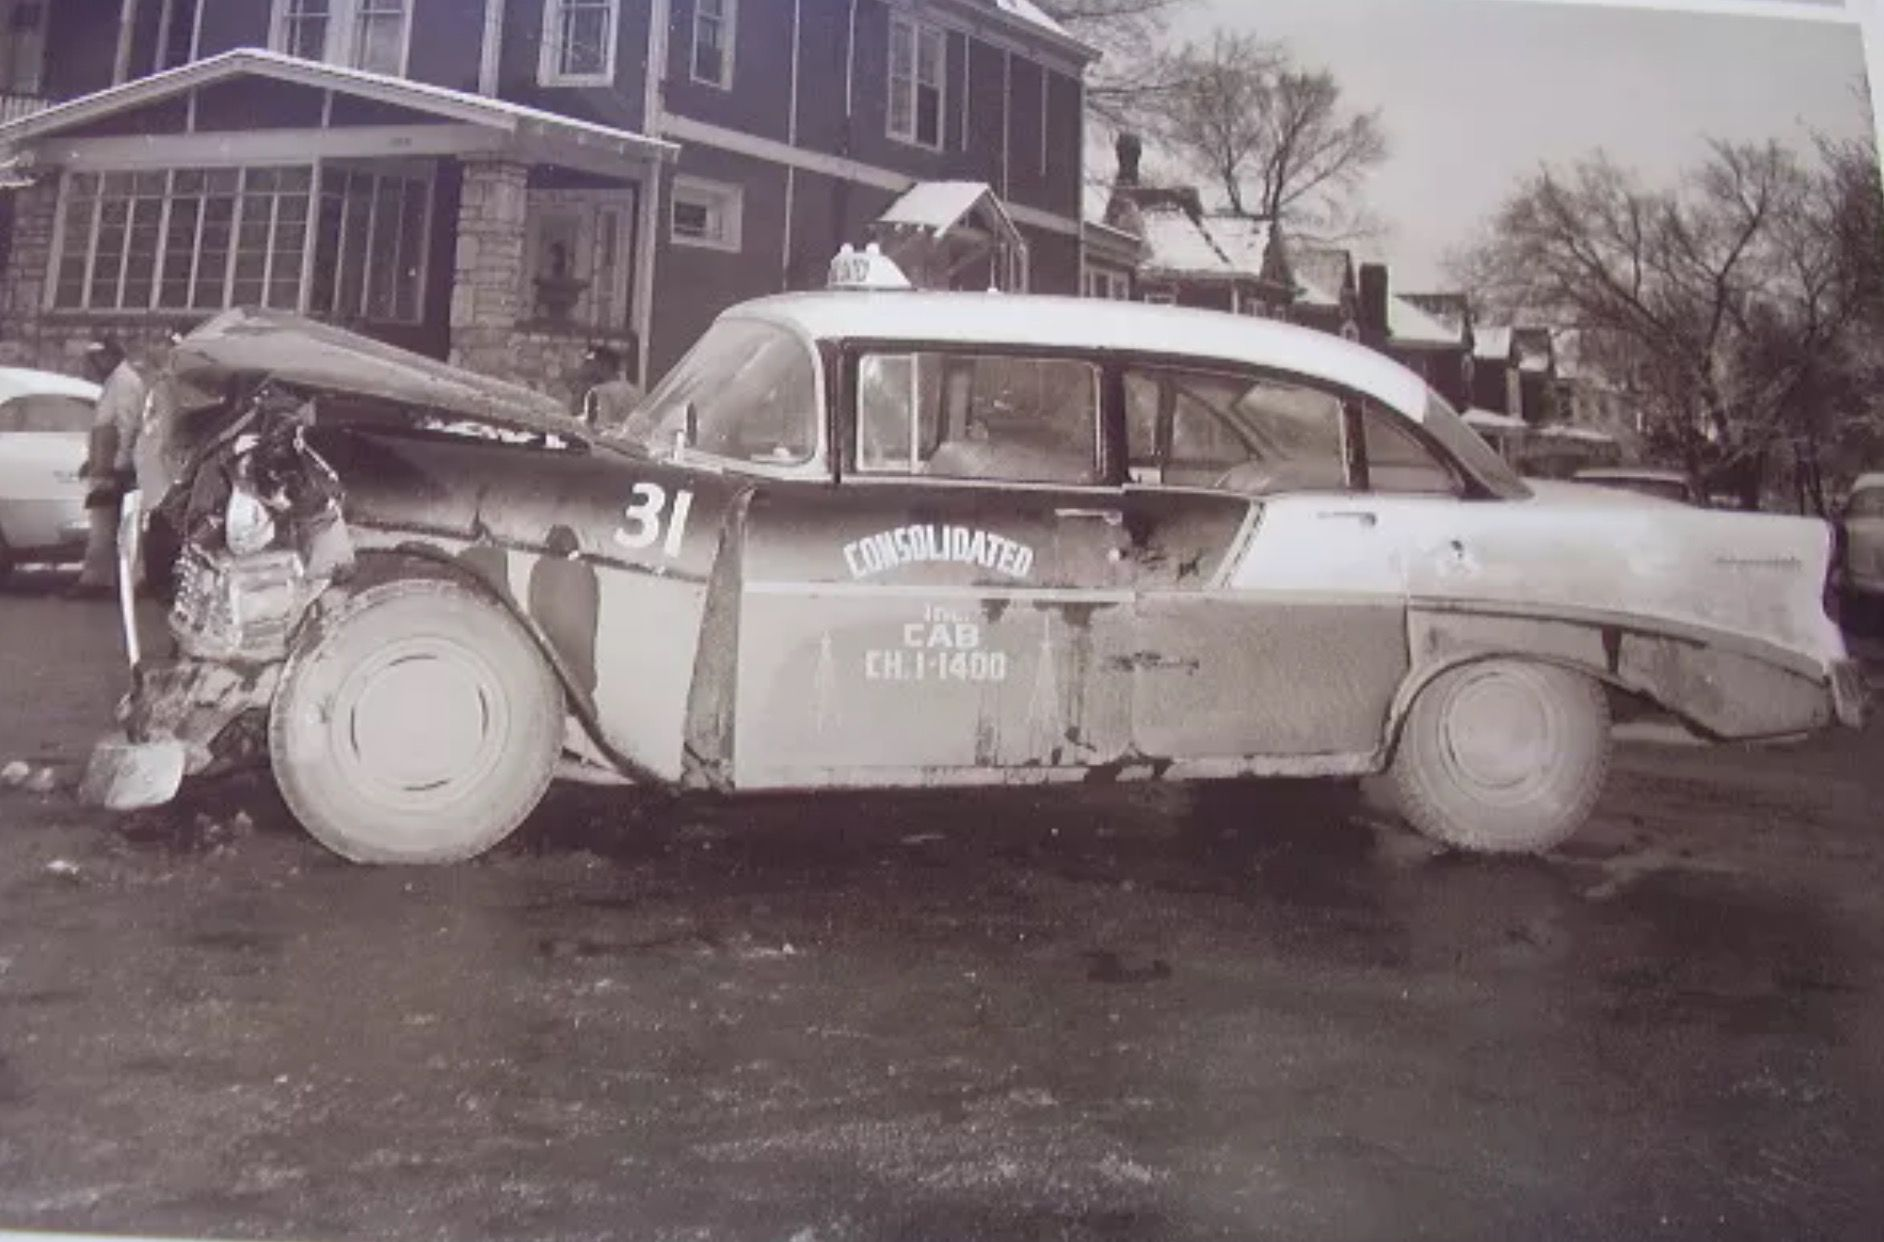 Pin by Matt on crash | Pinterest | Police cars, Chevrolet and Cars